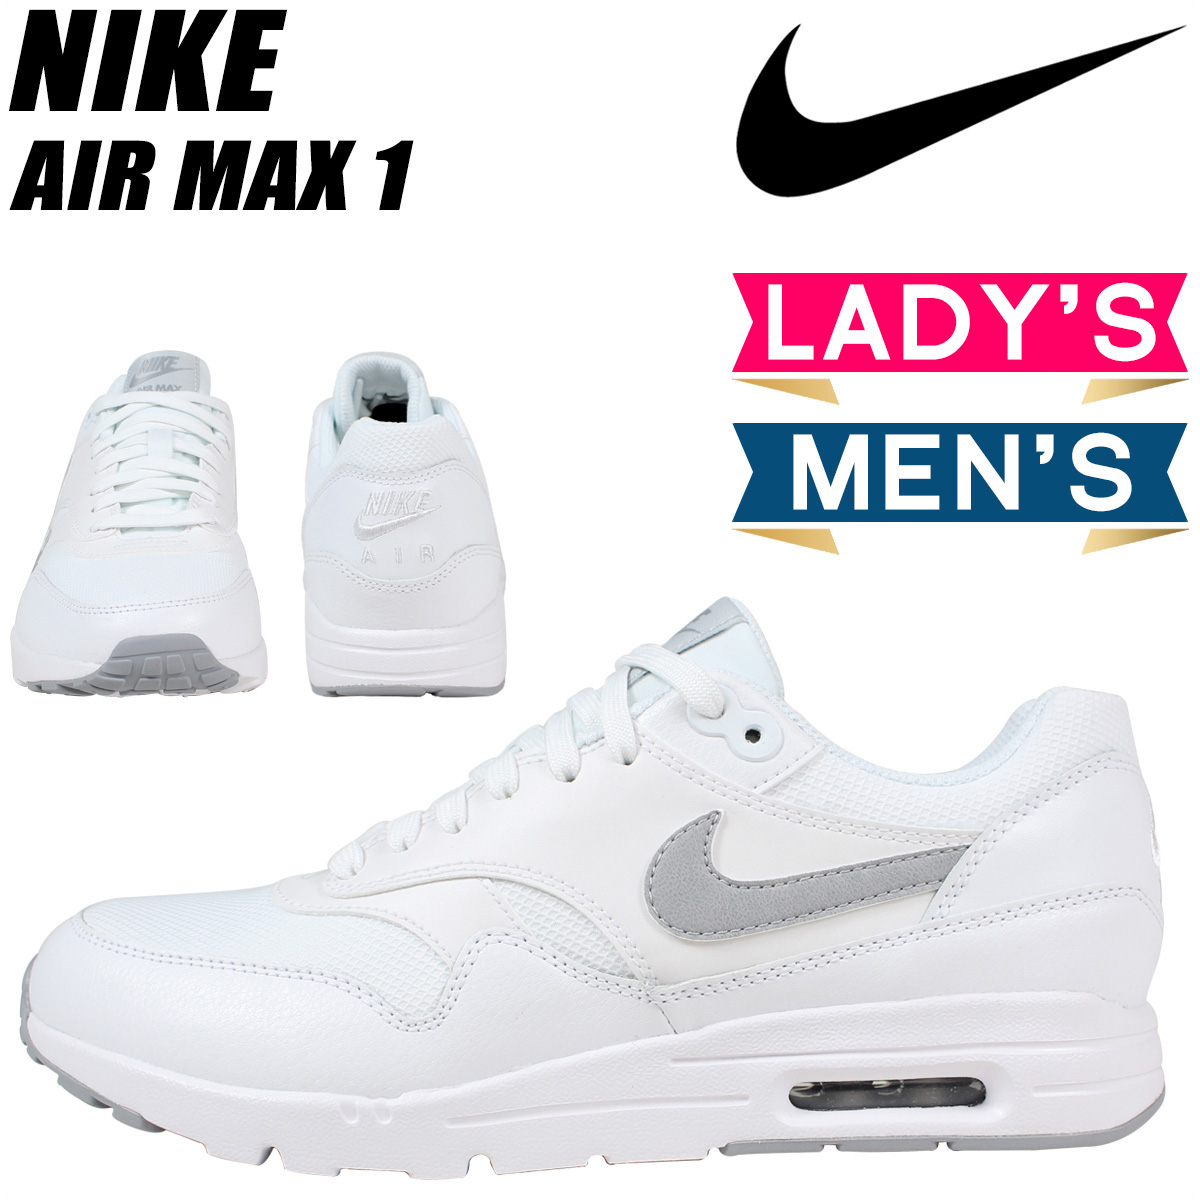 NIKE Kie Ney AMAX sneakers Lady's WMNS AIR MAX 1 ULTRA ESSENTIALS Air Max 1 essential 704,993 102 men's shoes white